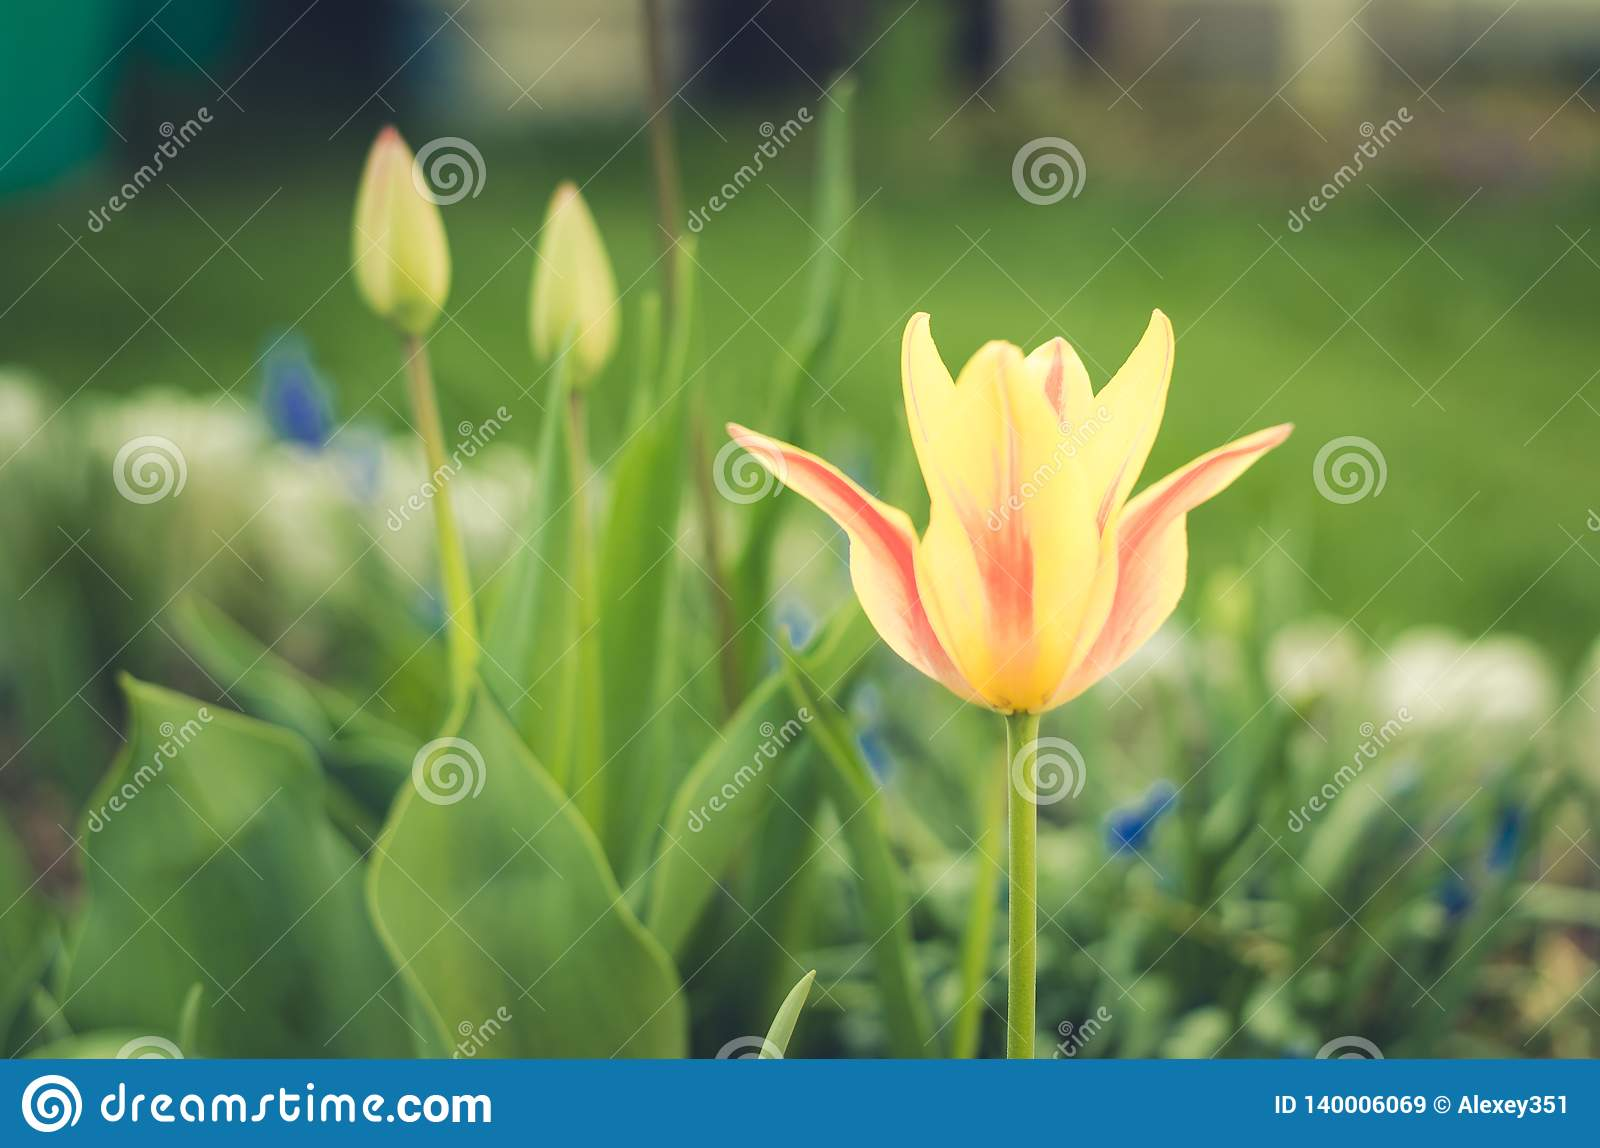 field flowers yellow tulip. Spring flowers. Beautiful meadow/ Beautiful nature scene with blooming white tulip, closeup